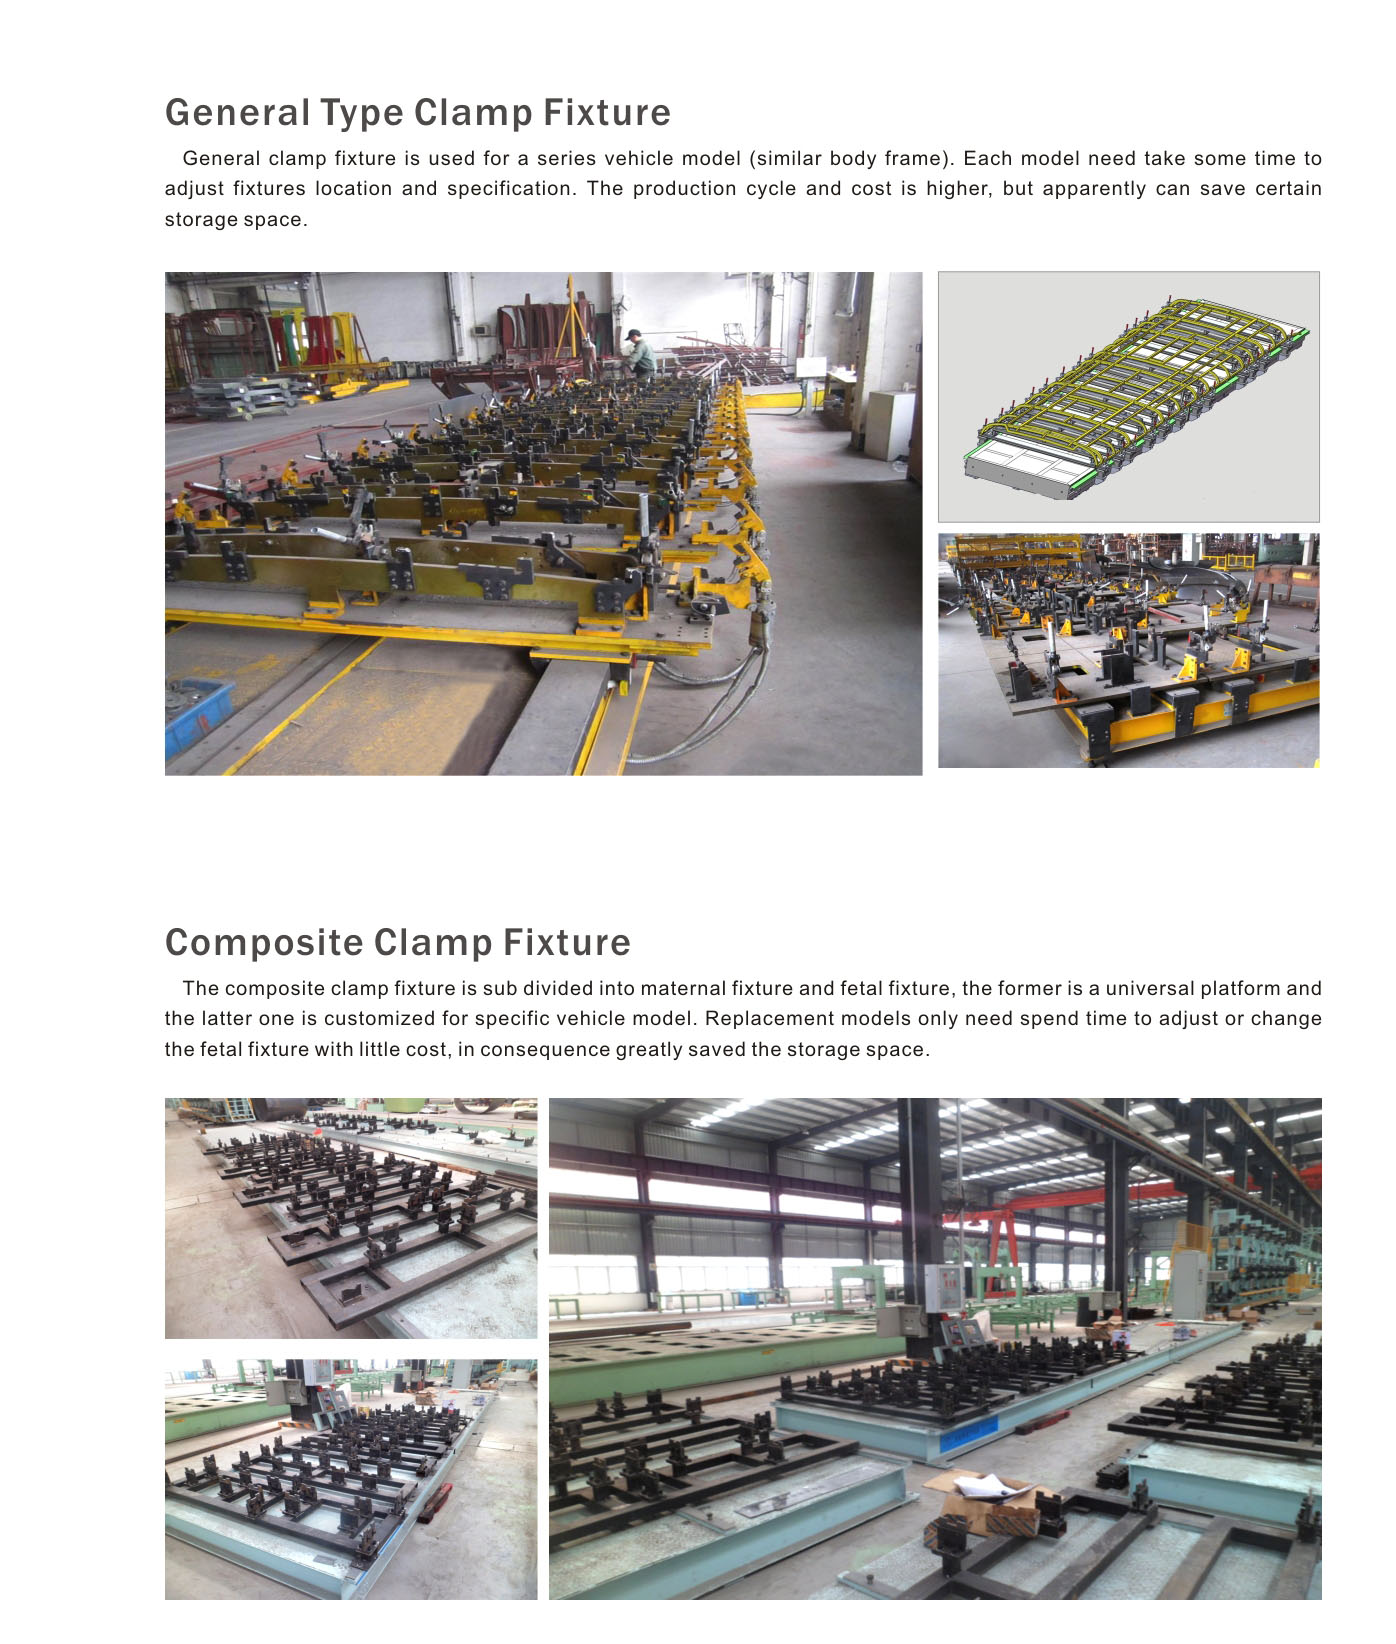 Automobile Production Fixtures and Equipment Congregation